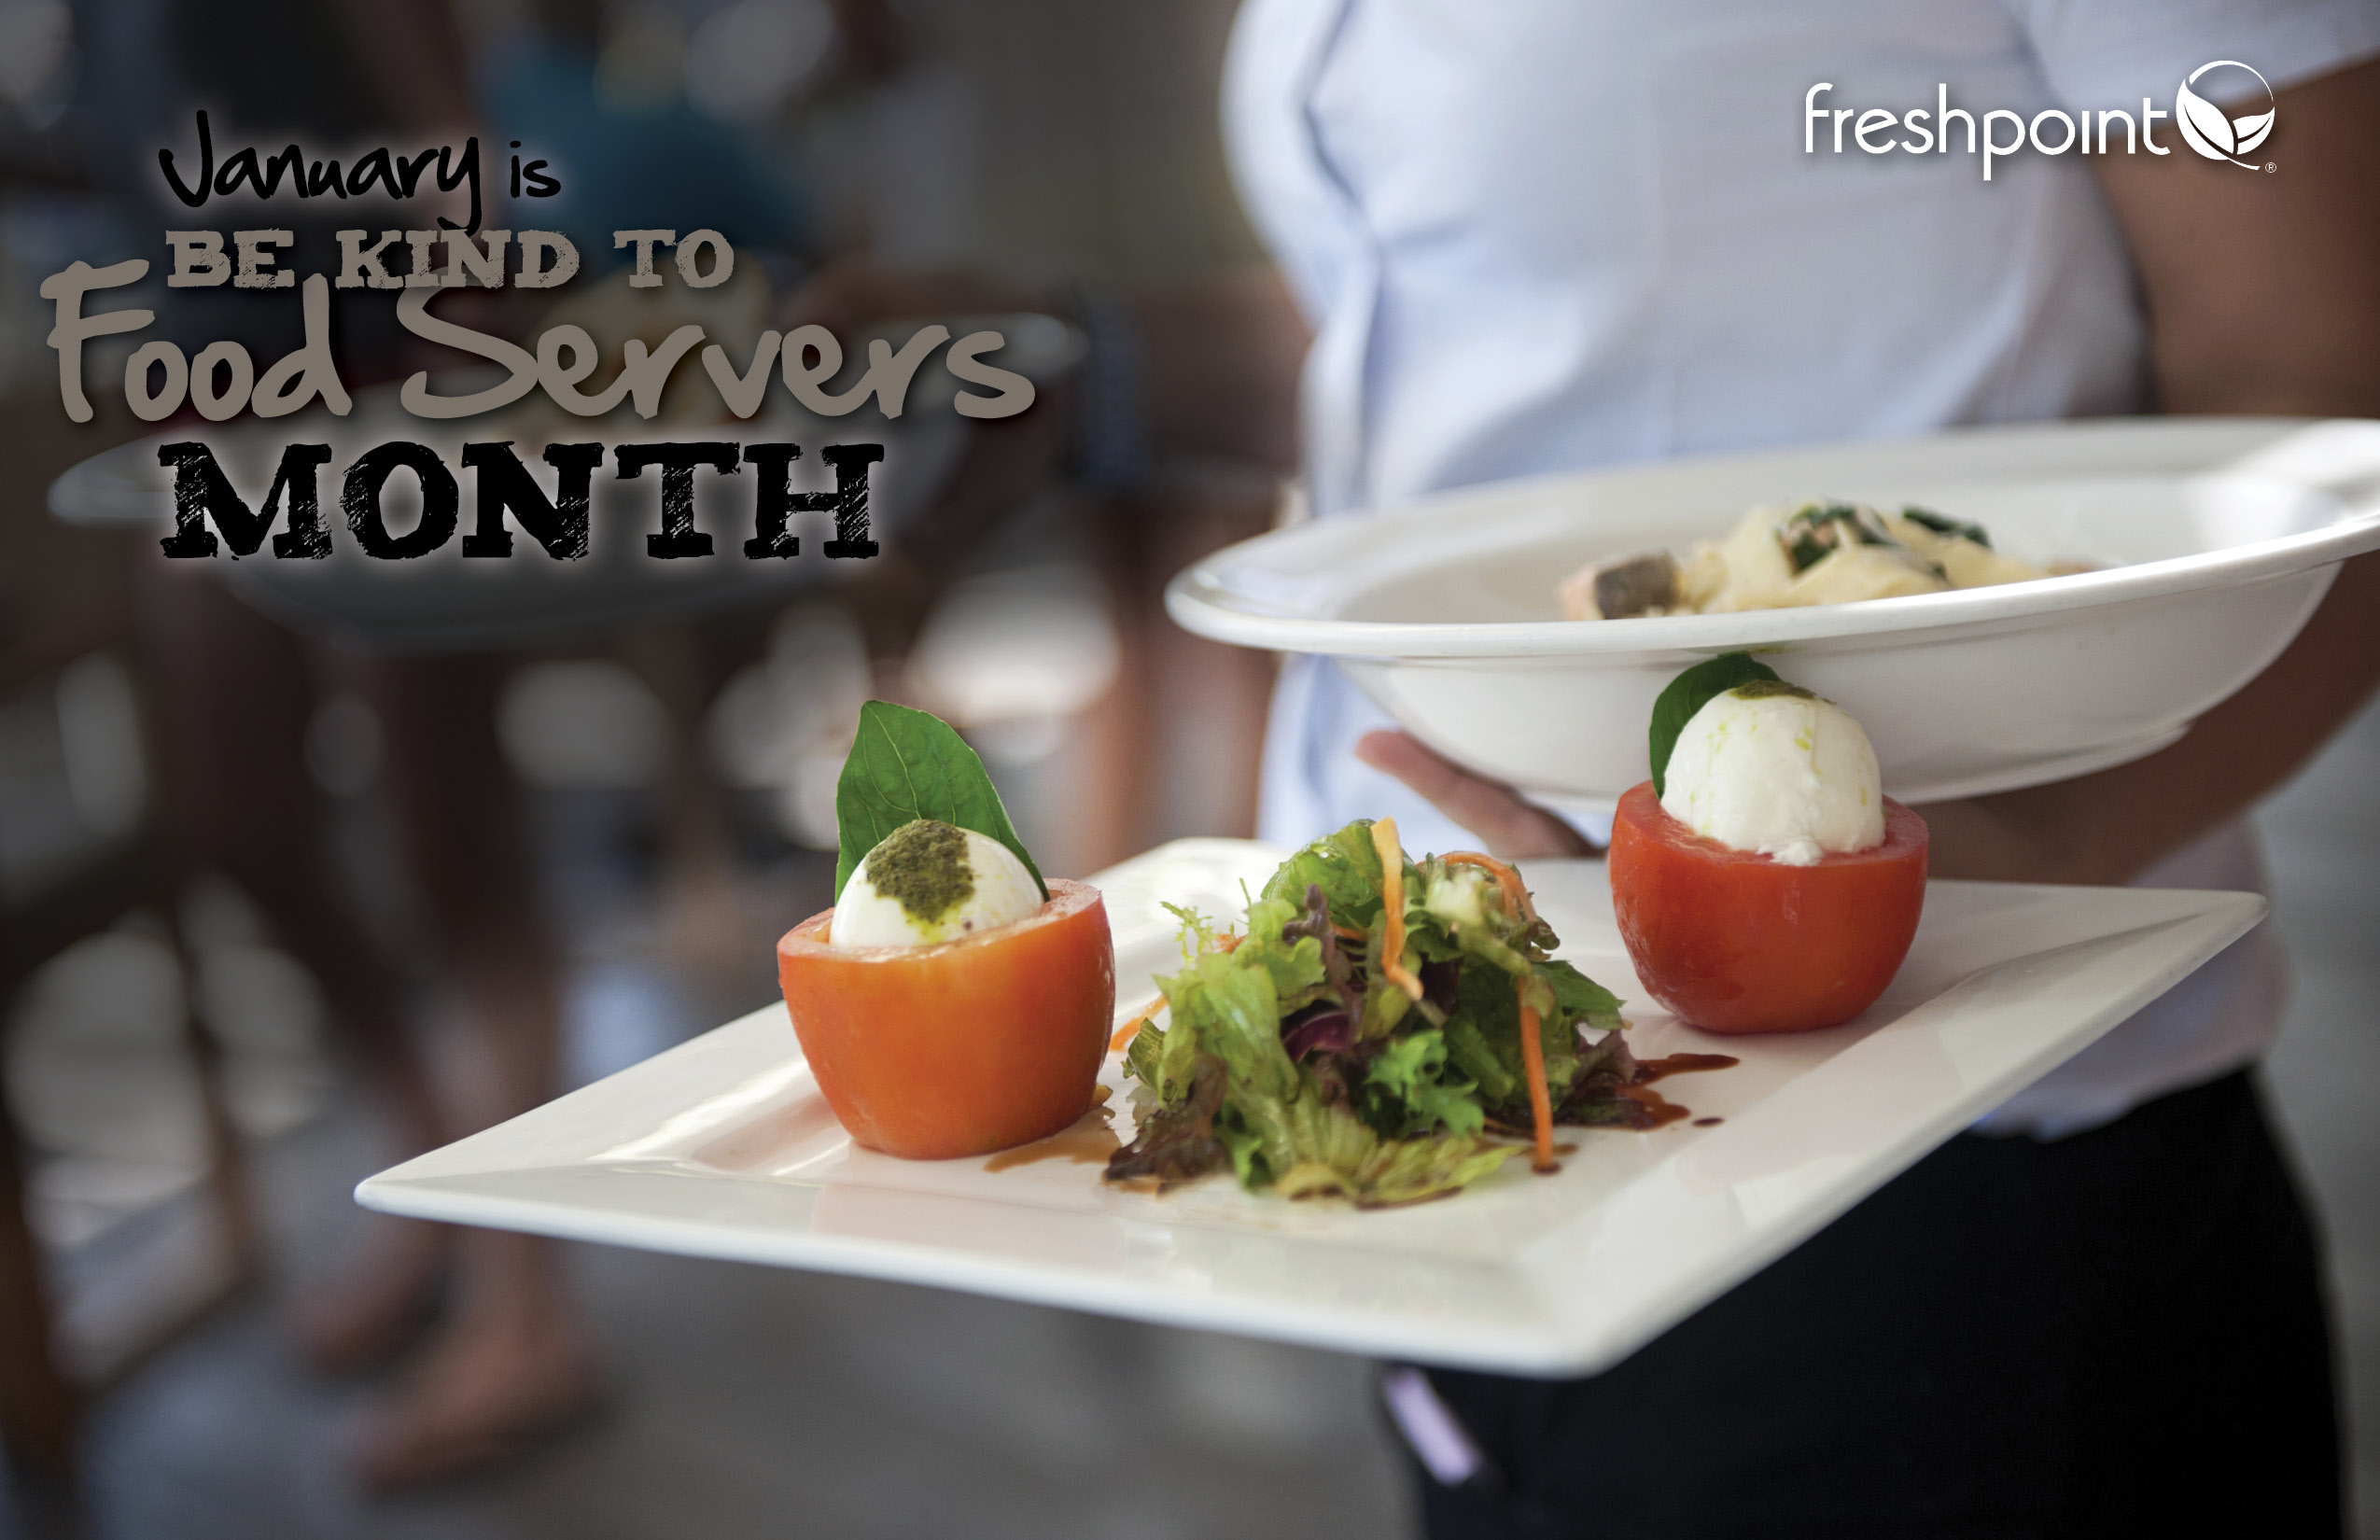 January is Be Kind to Food Servers Month